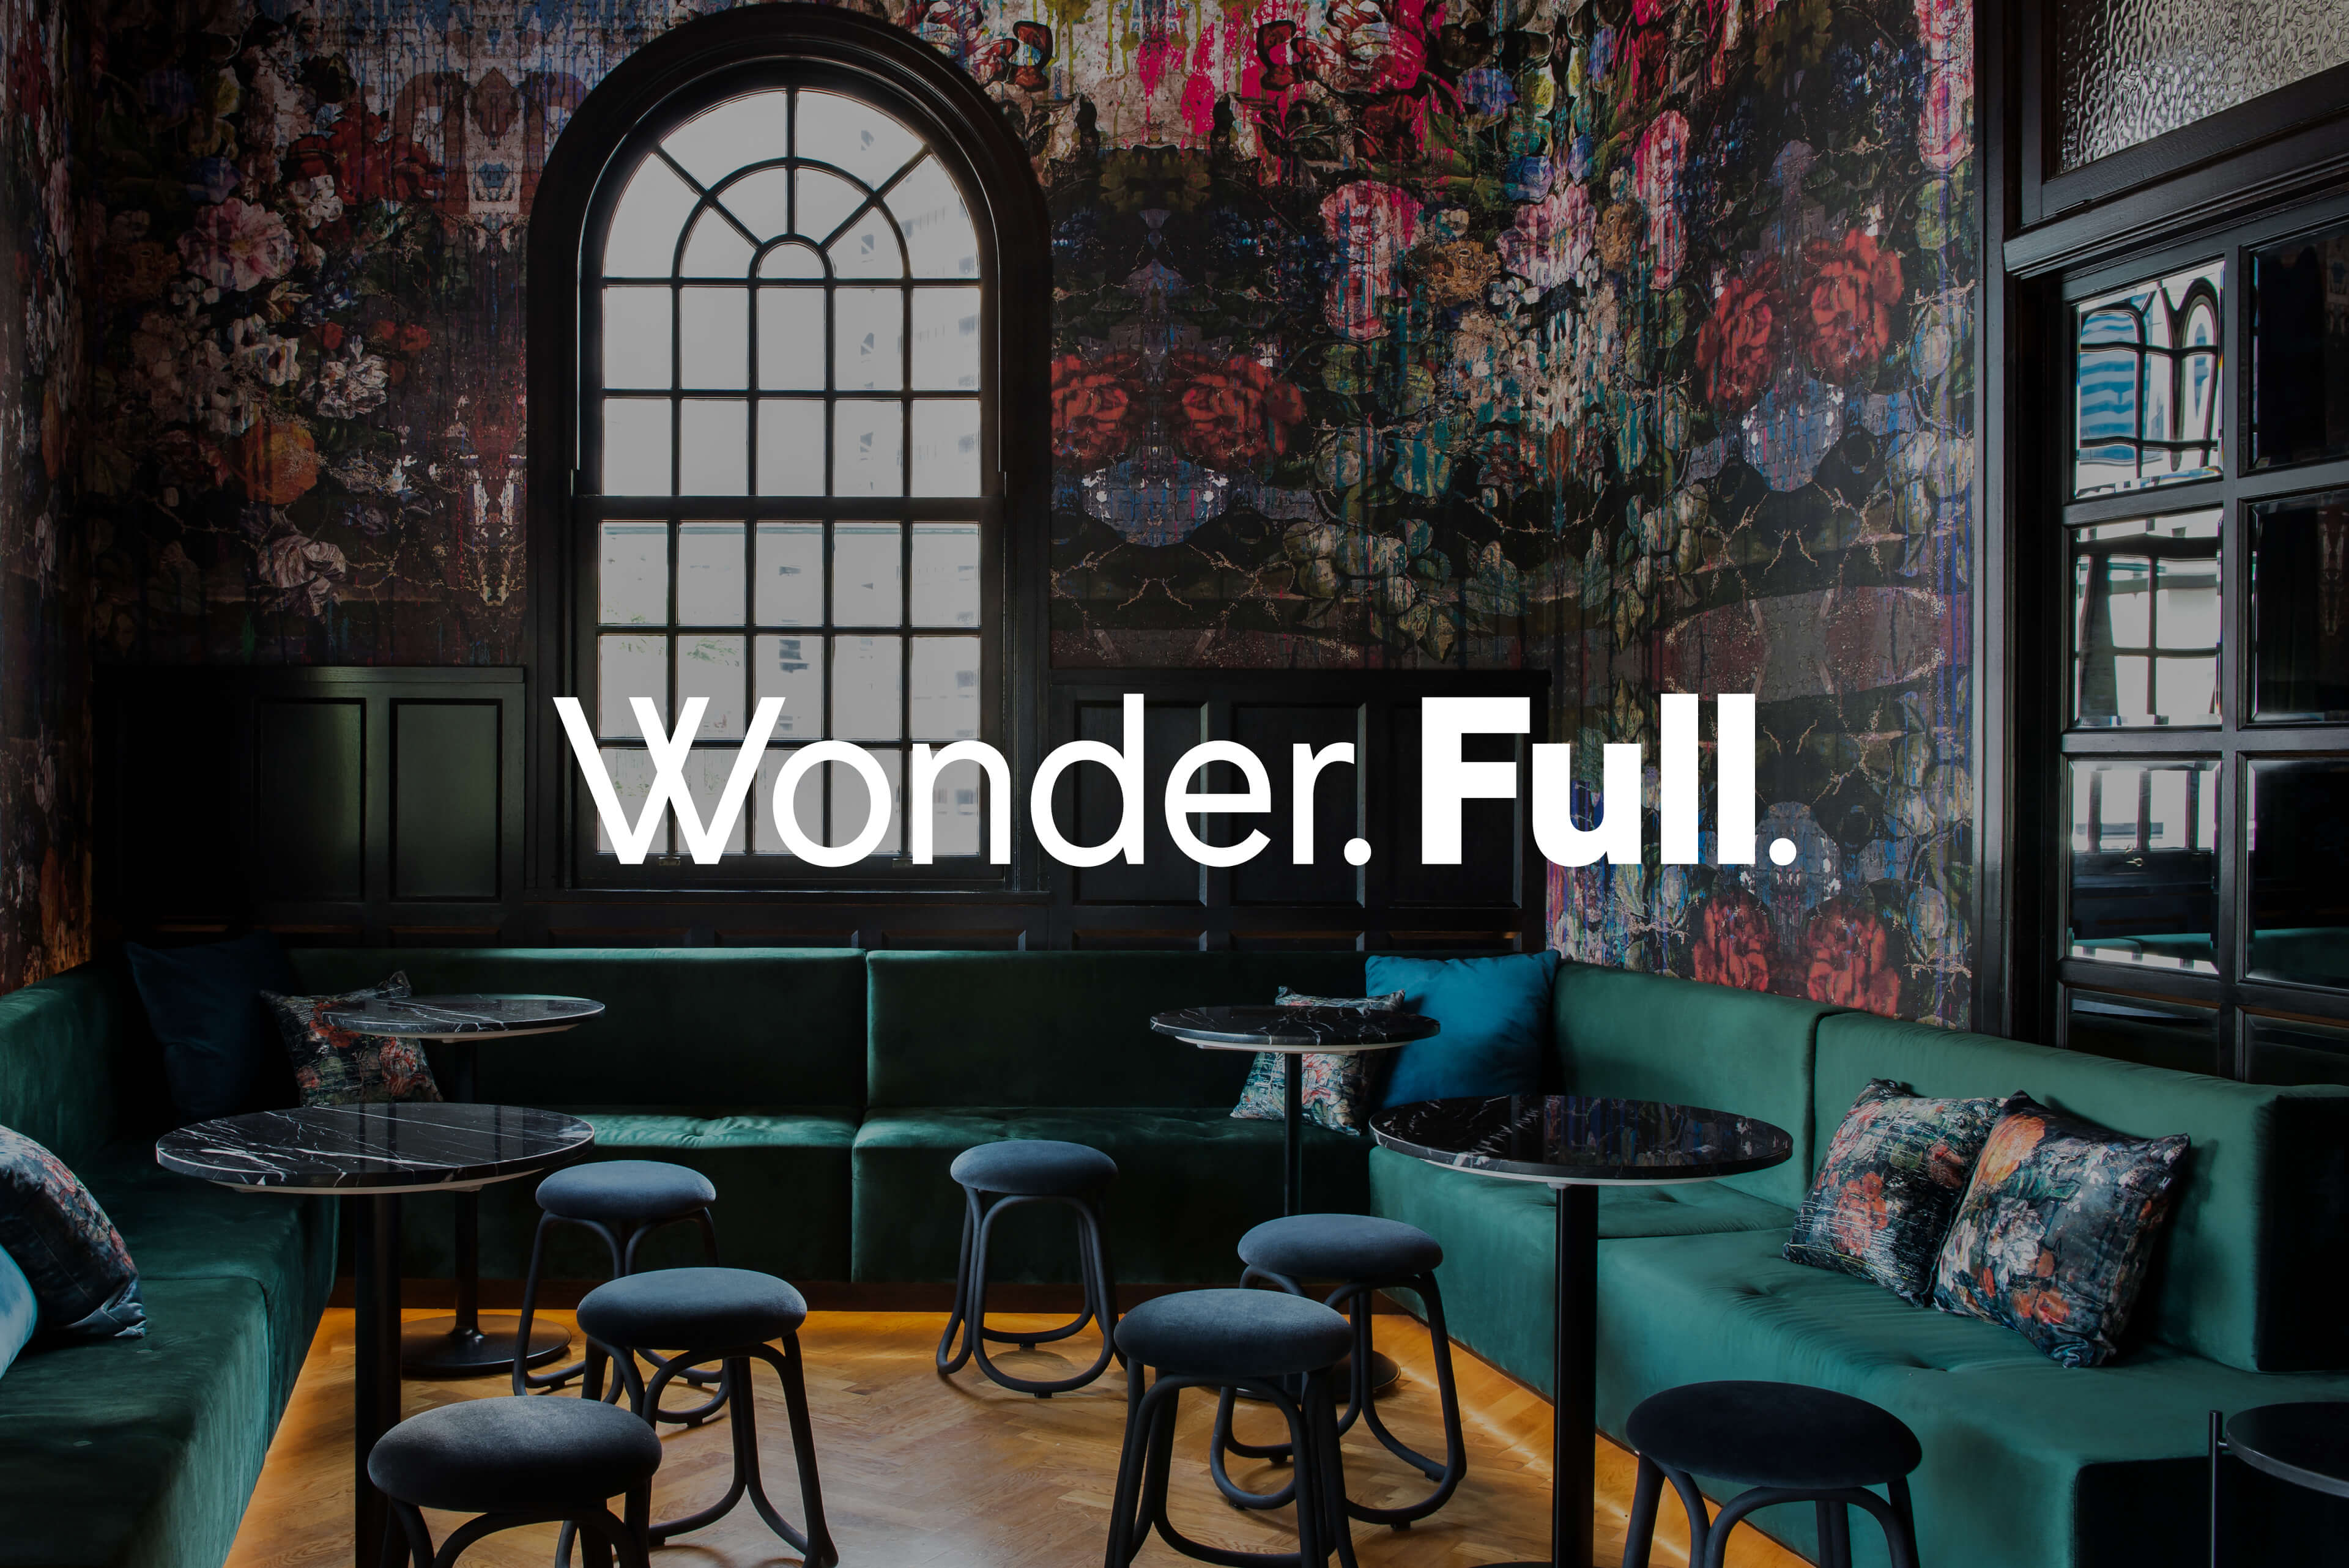 Ovolo Hotels Brand Refresh - Wonder. Full. Logotype with Hotel Interior Photography